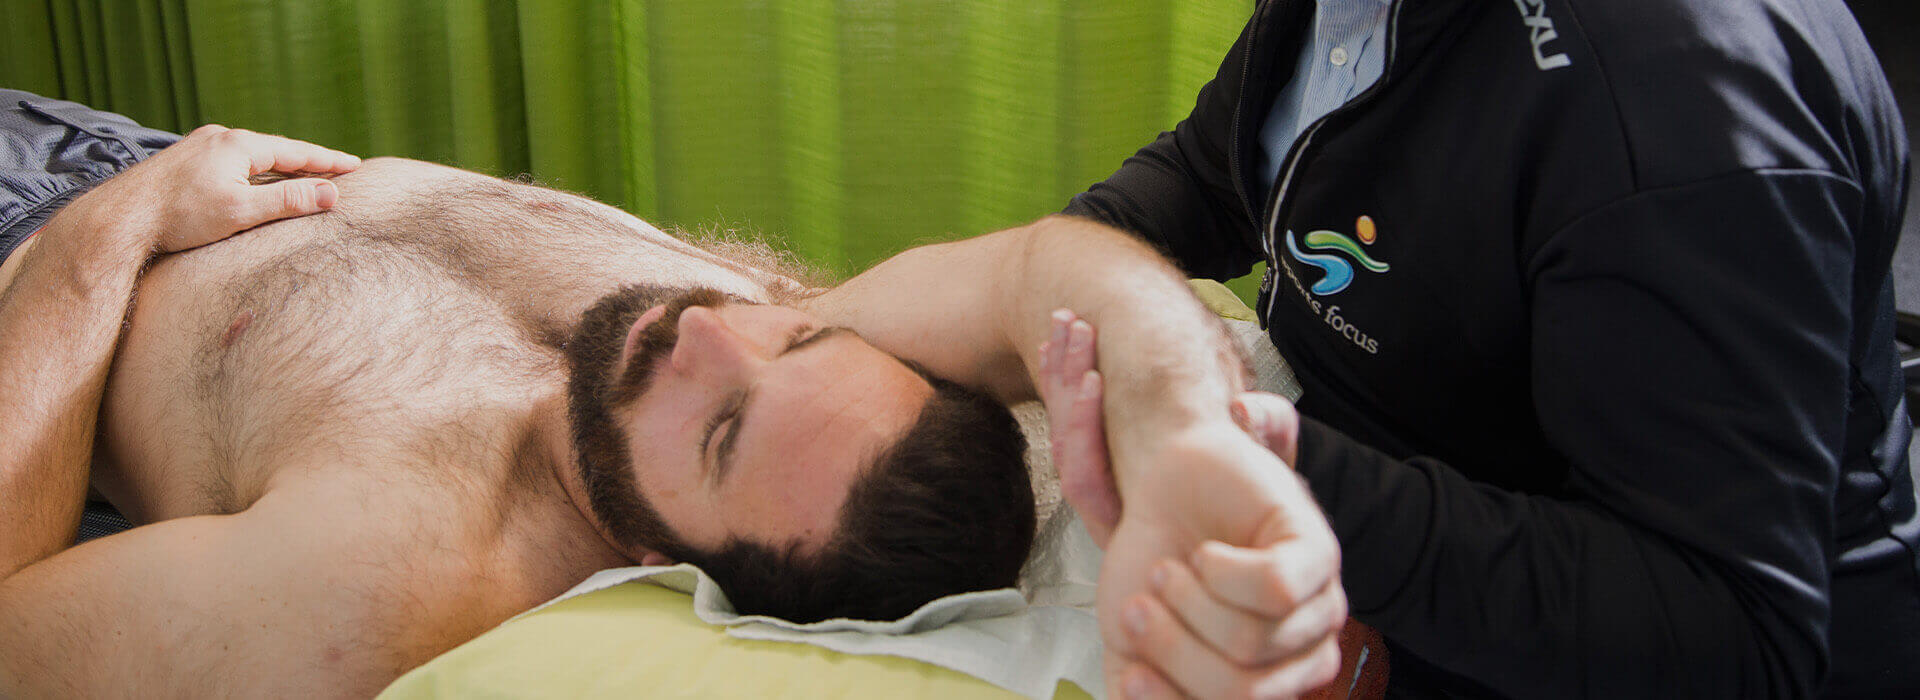 Treat-Shoulder-Pain-Sydney-Shoulder-Physiotherapy